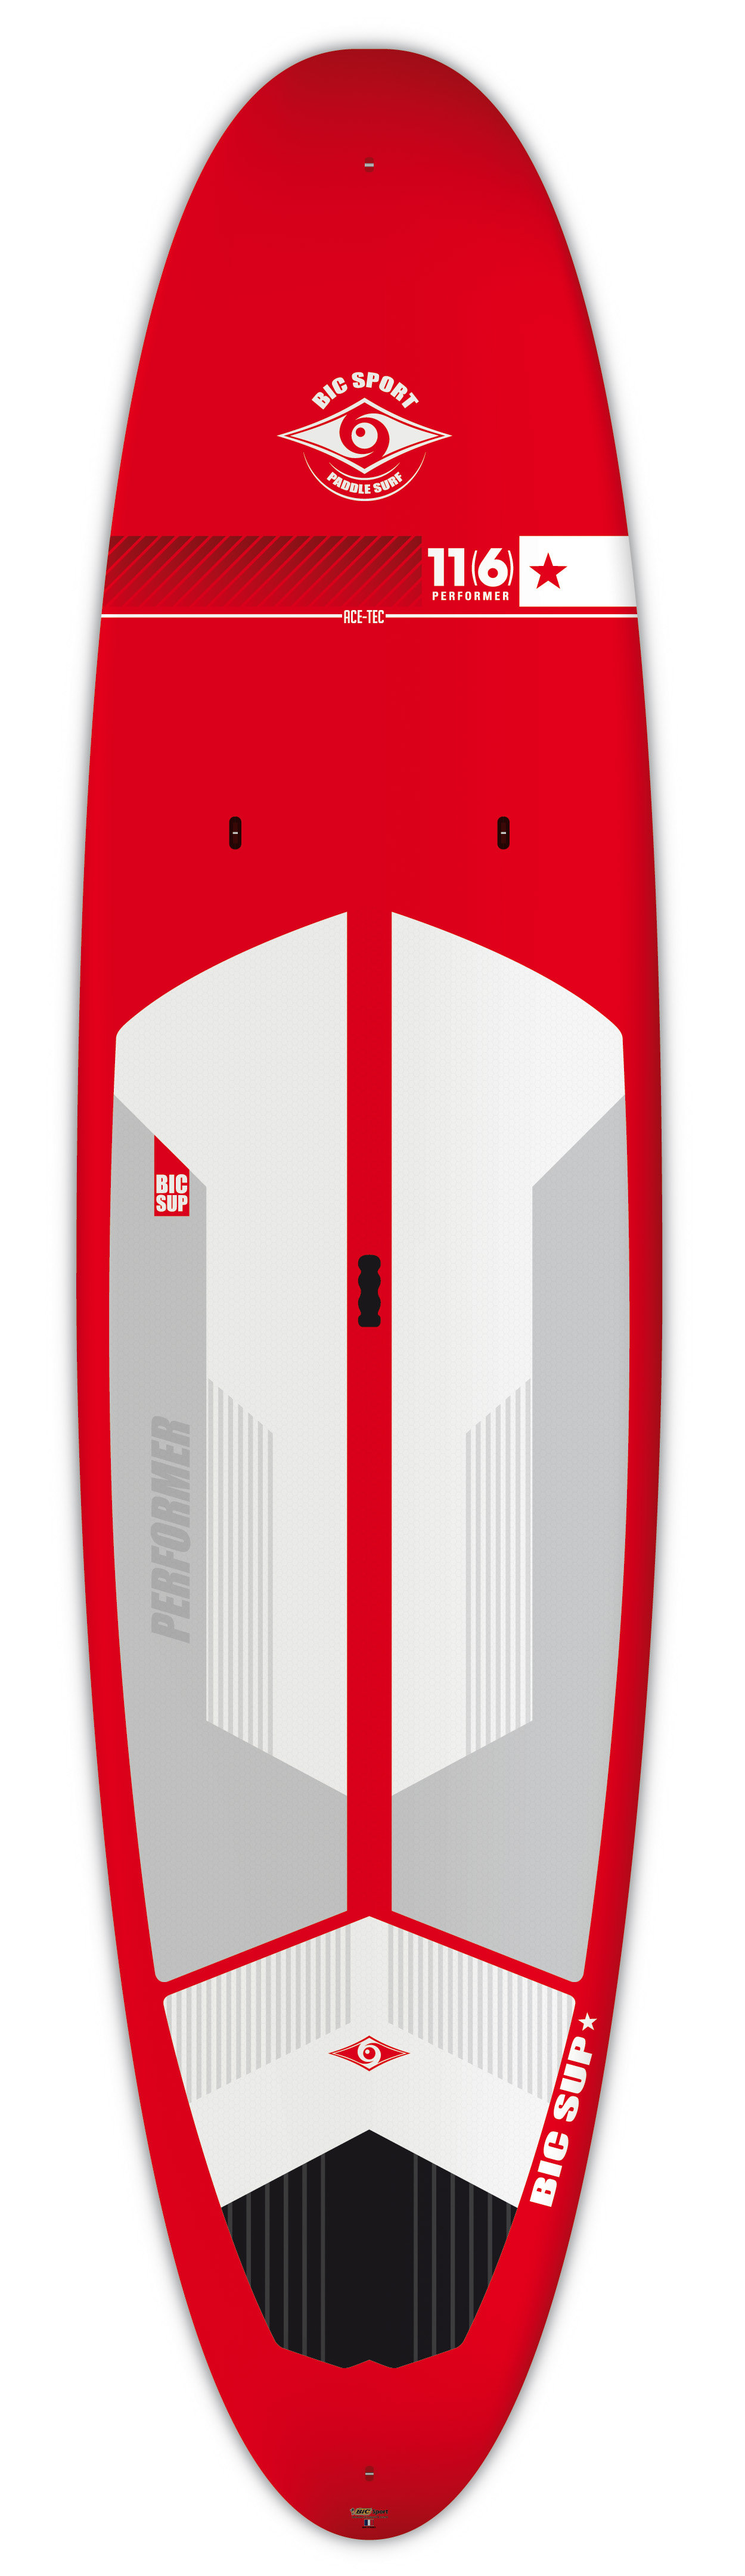 "Paddleboards: ACE-TEC 11'6"" Performer Red by BIC SUP - Image 4500"